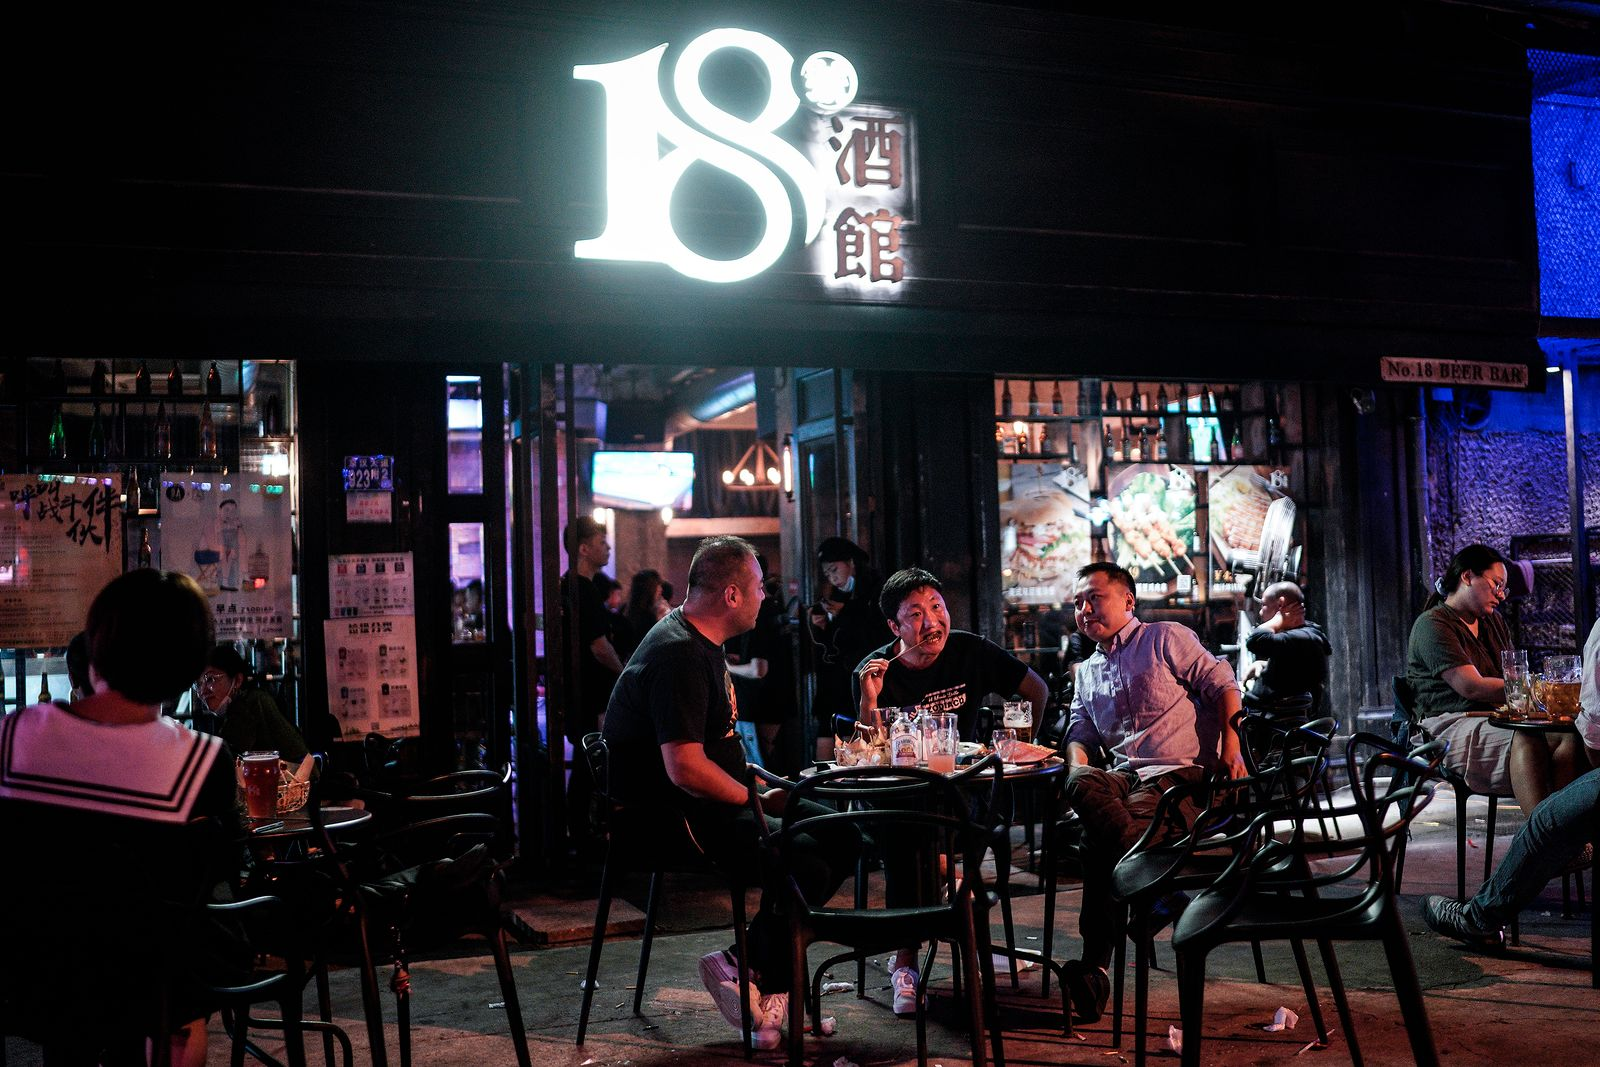 Wuhan Bar In Night After The Outbreak of Coronavirus